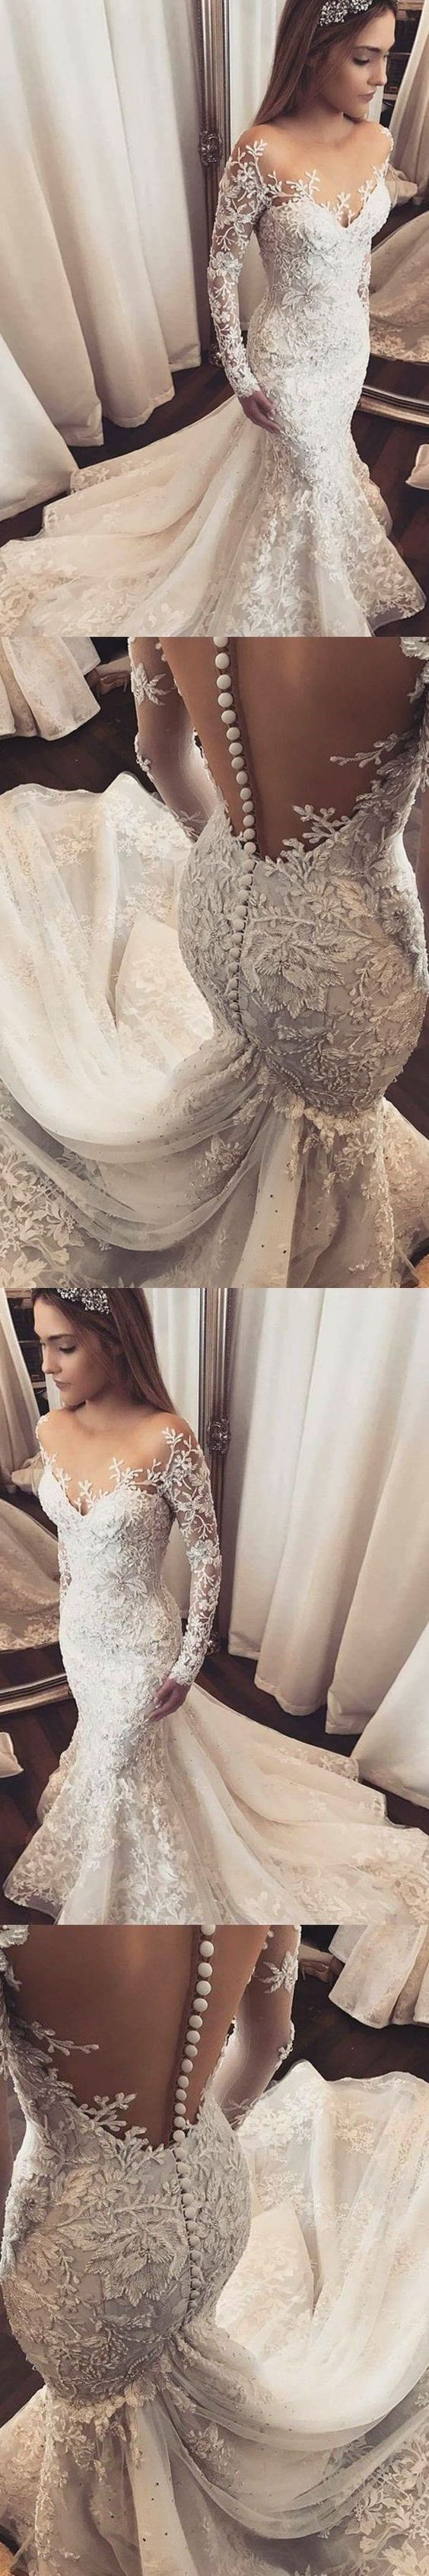 Gorgeous lace wedding dress for a winter fairy tale wedding. #winterwedding #fairytalewedding